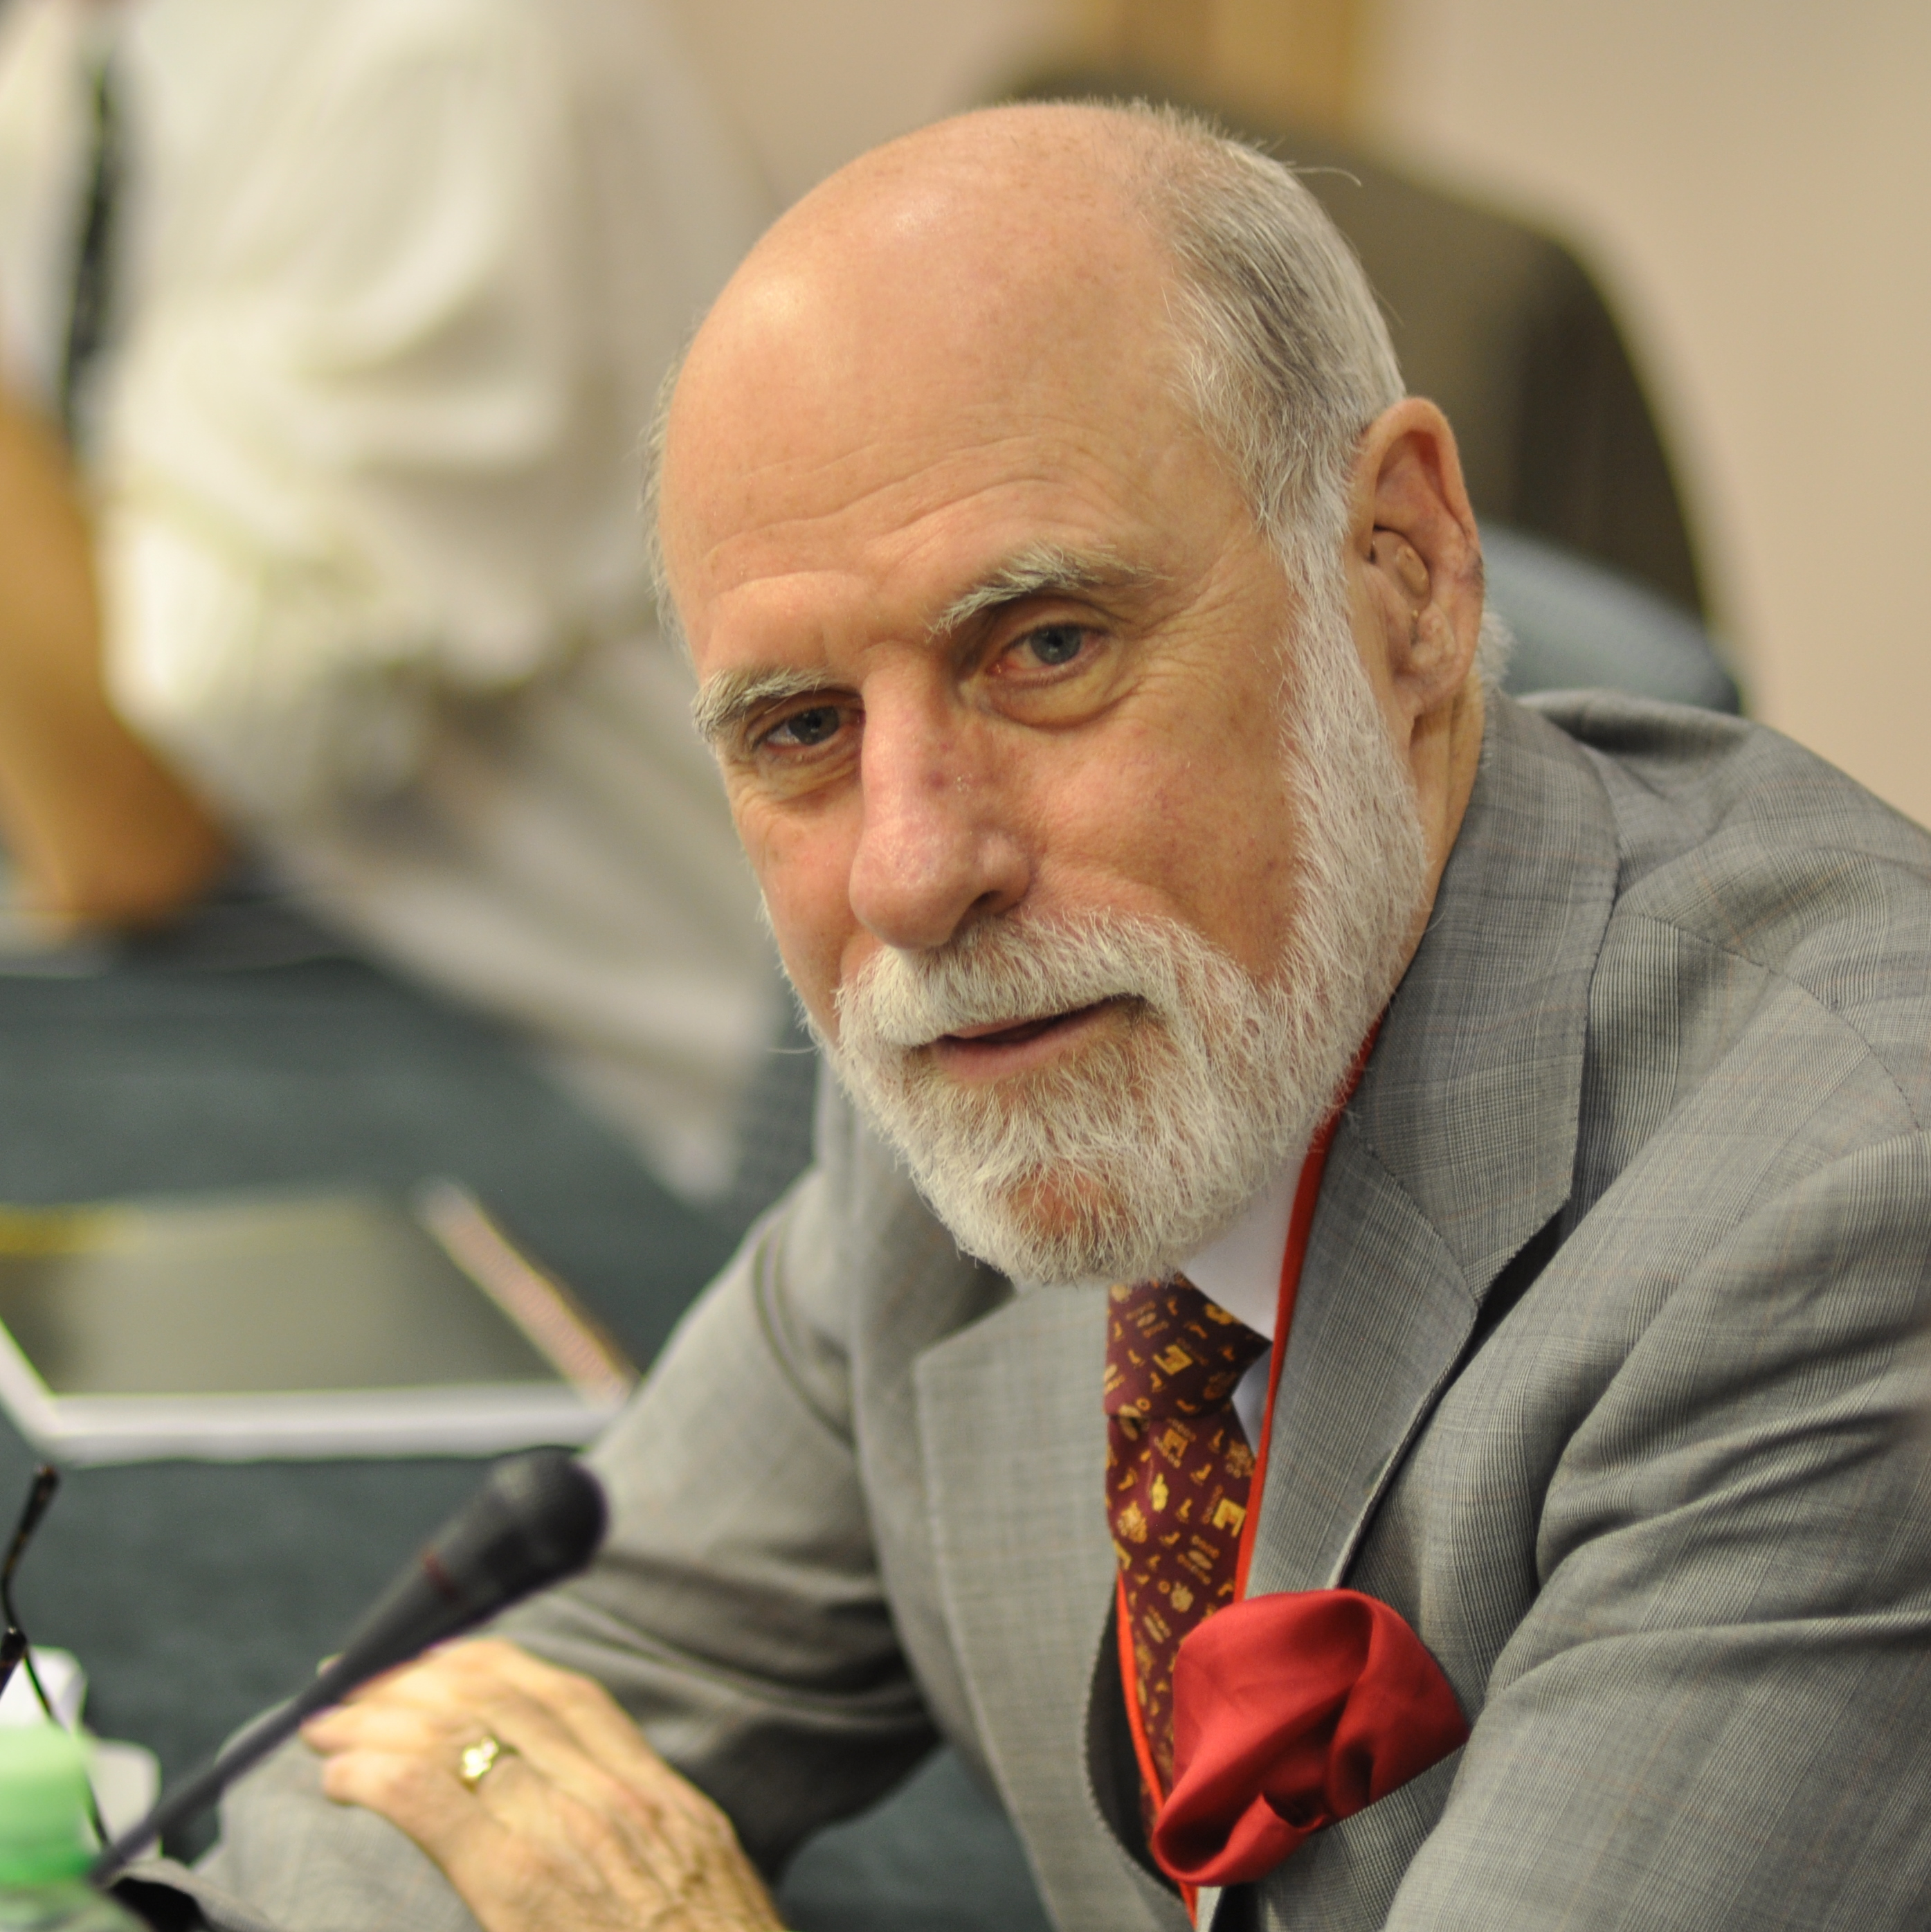 Vint_cerf_-_2010_small